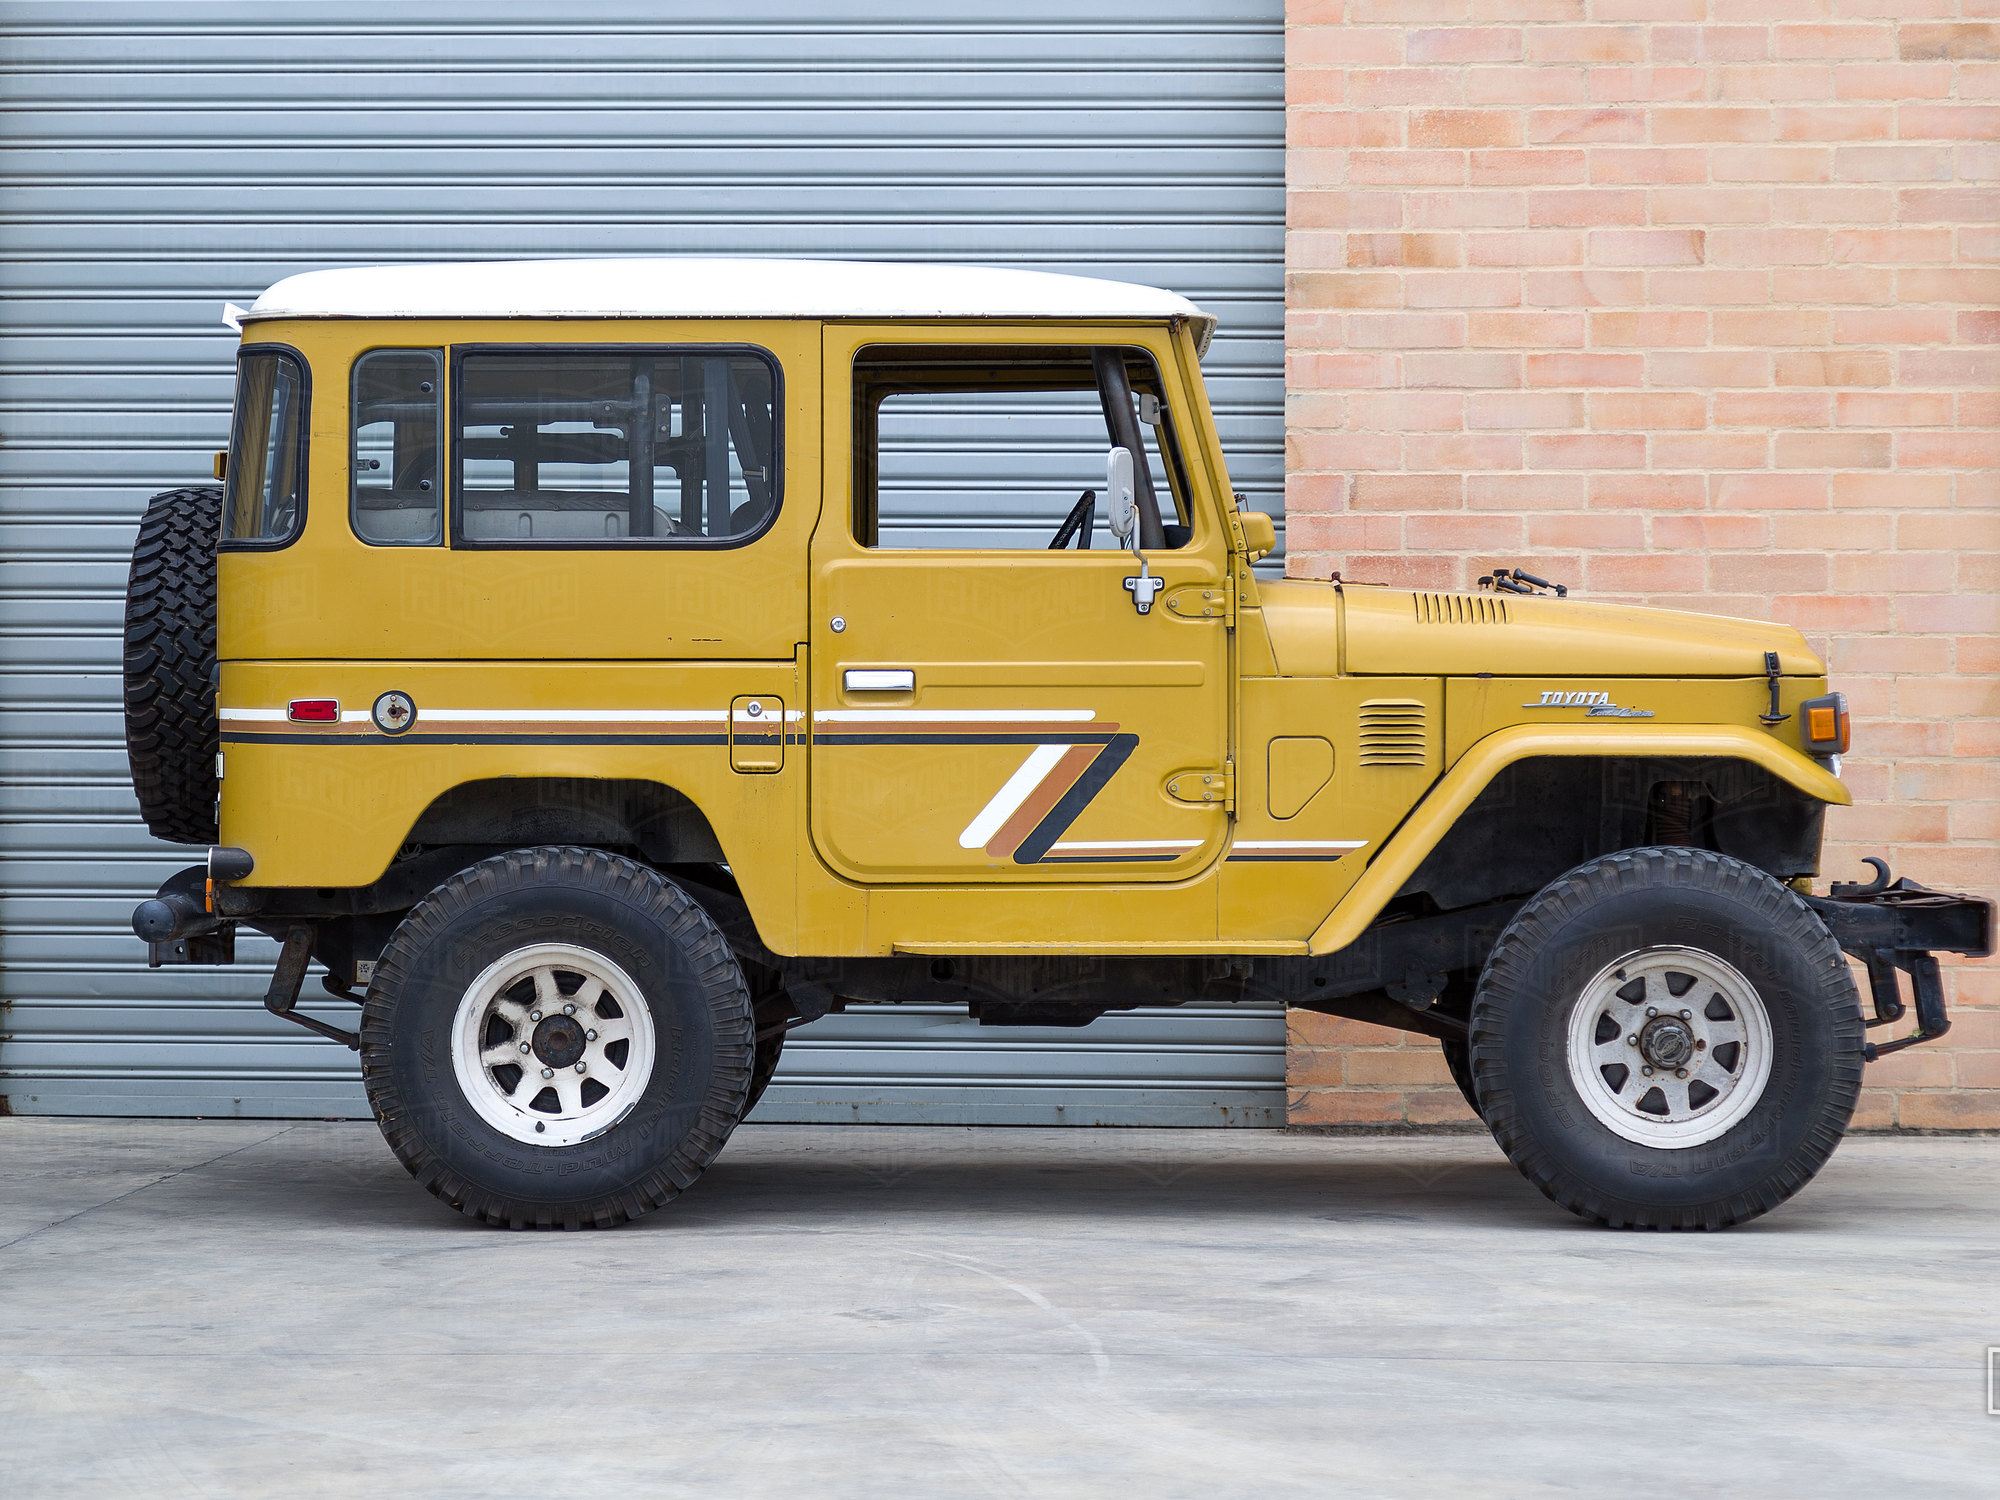 Original California FJ40 from 1977